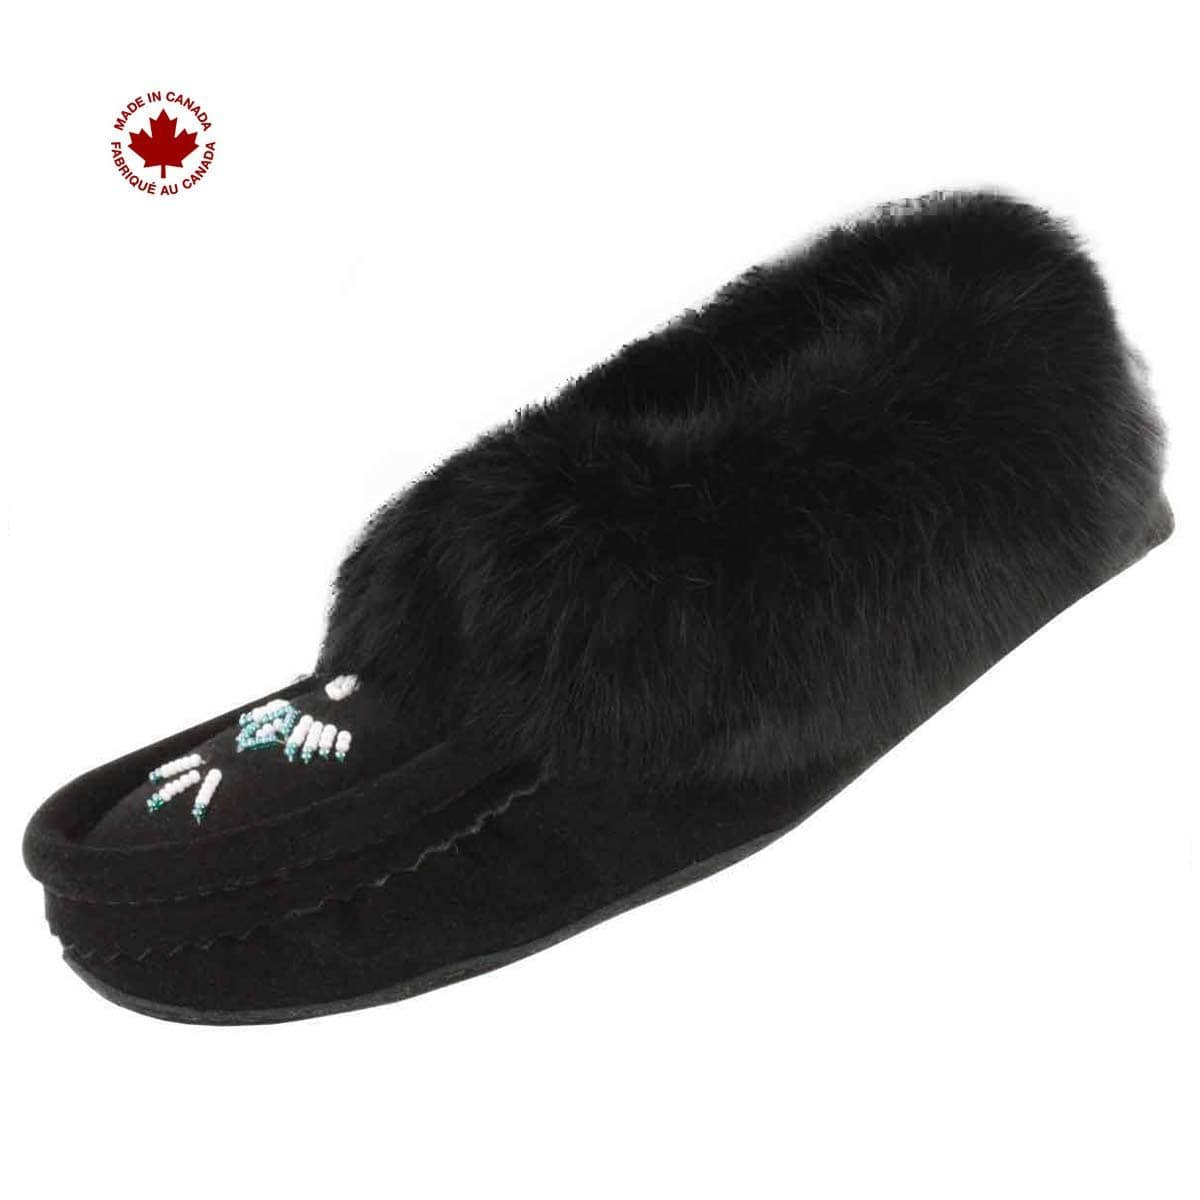 - SoftMoc Women's Rabbit Fur Fleece Lined Moccasin